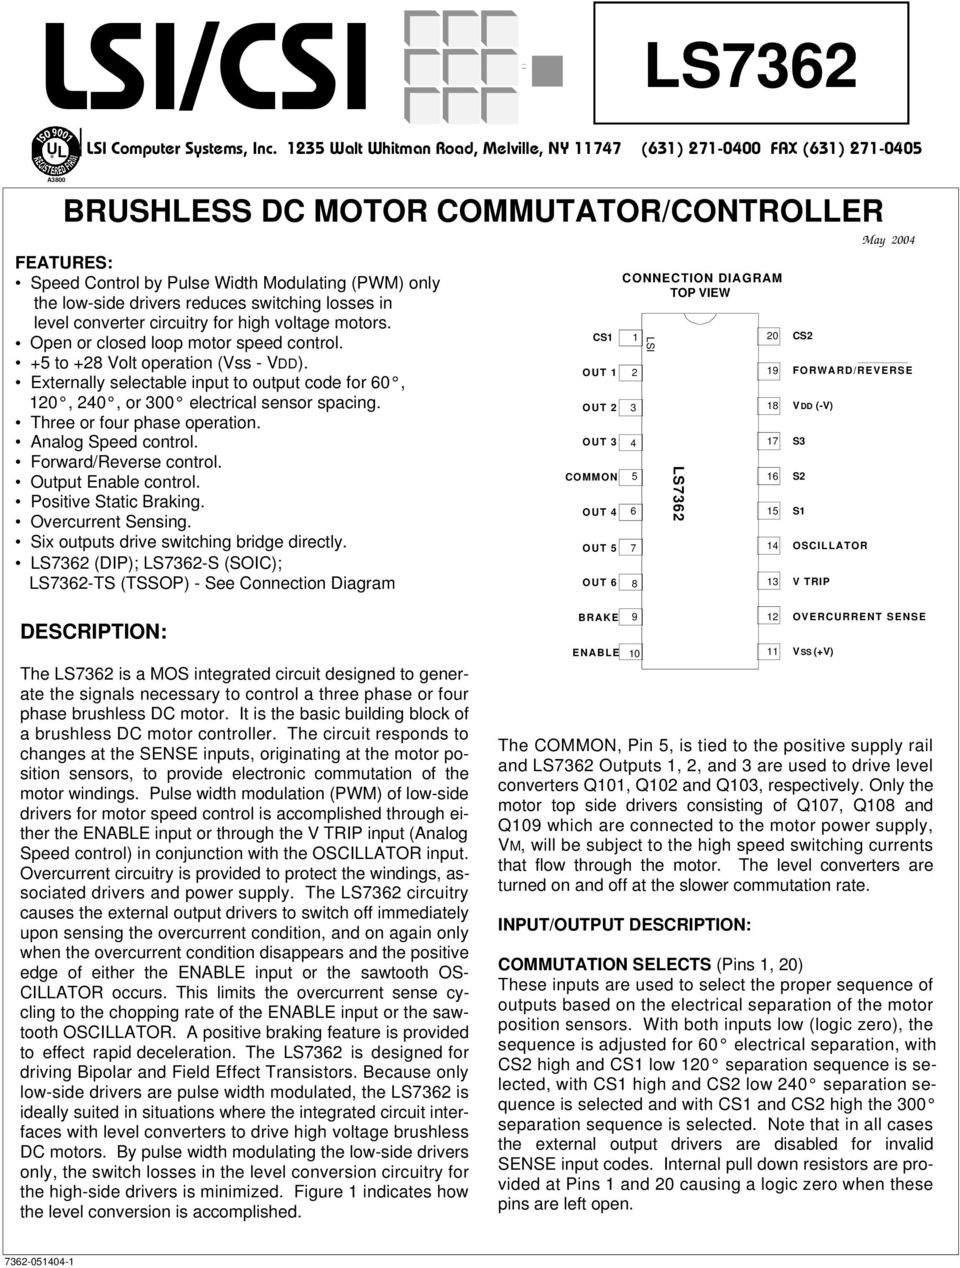 Lsi Csi Ls7362 Brushless Dc Motor Commutator Controller Description Forward Reverse Control Operation And Circuits Losses In Level Converter Circuitry For High Voltage Motors Open Or Closed Loop Speed